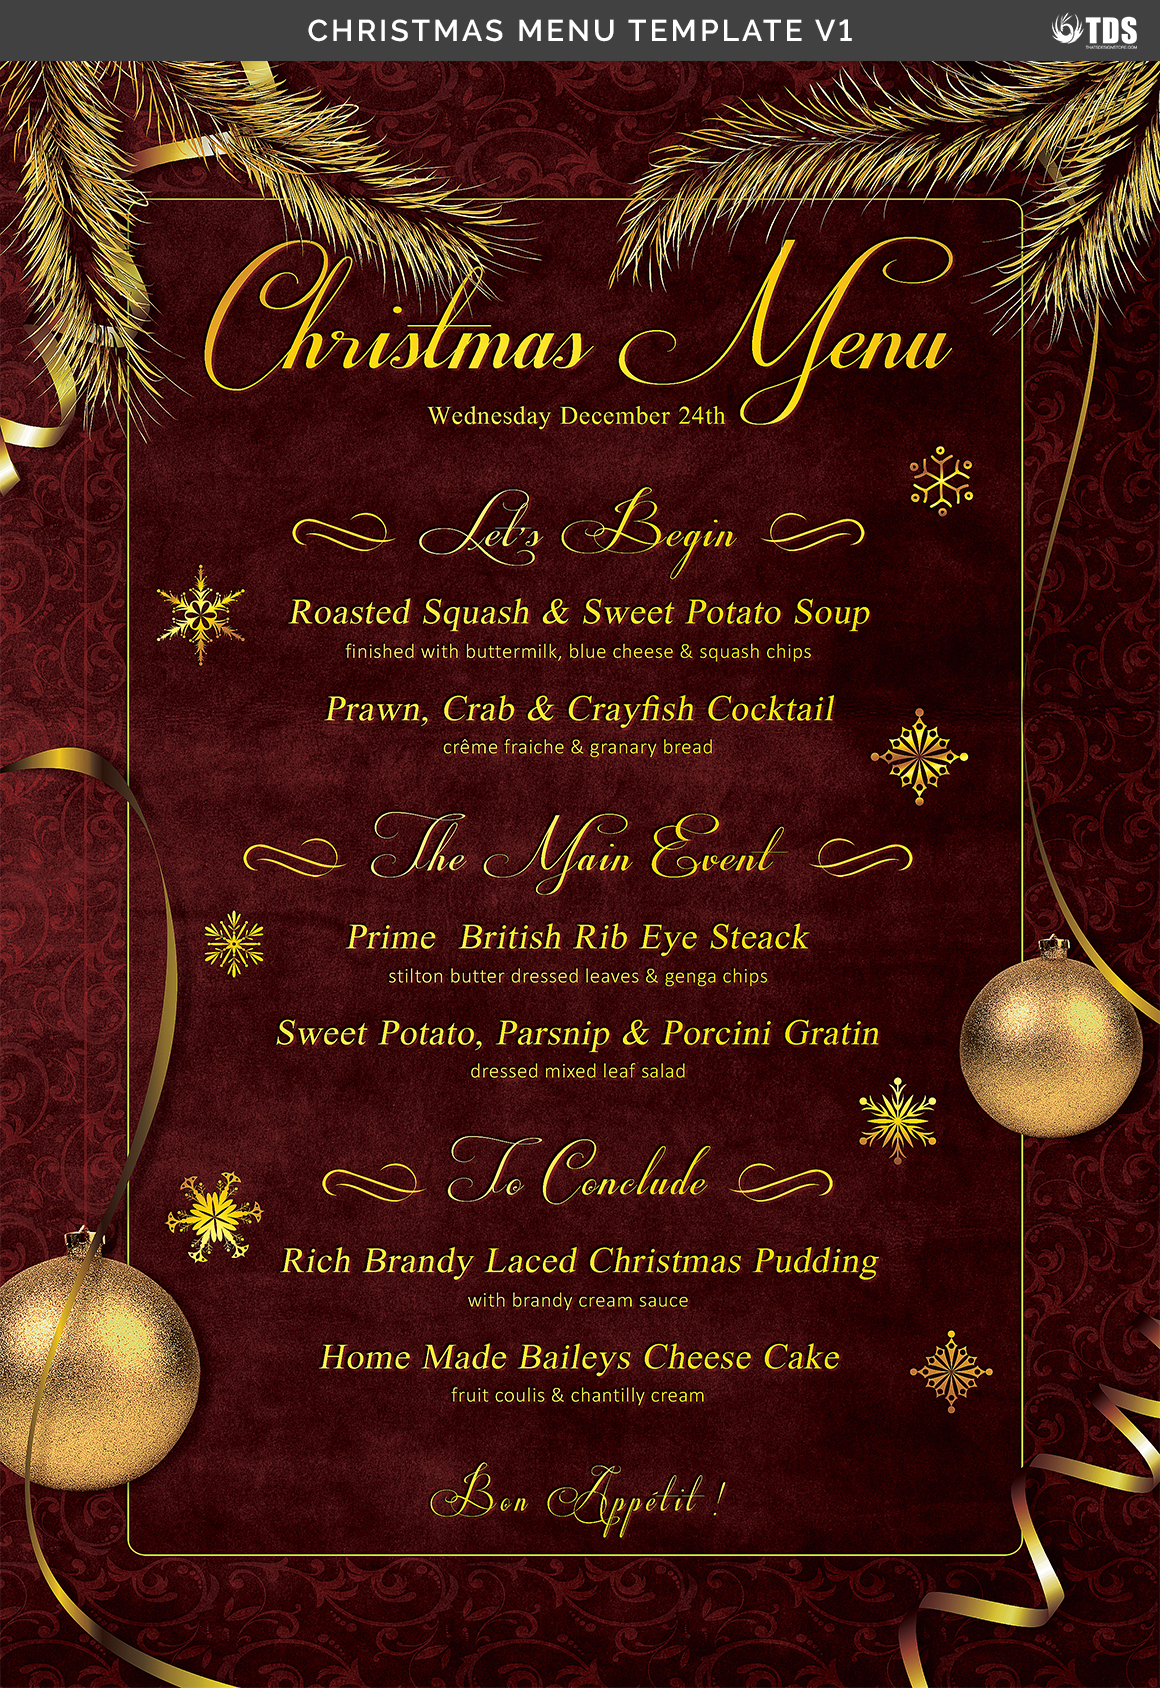 Christmas Menu Template V1 On Behance